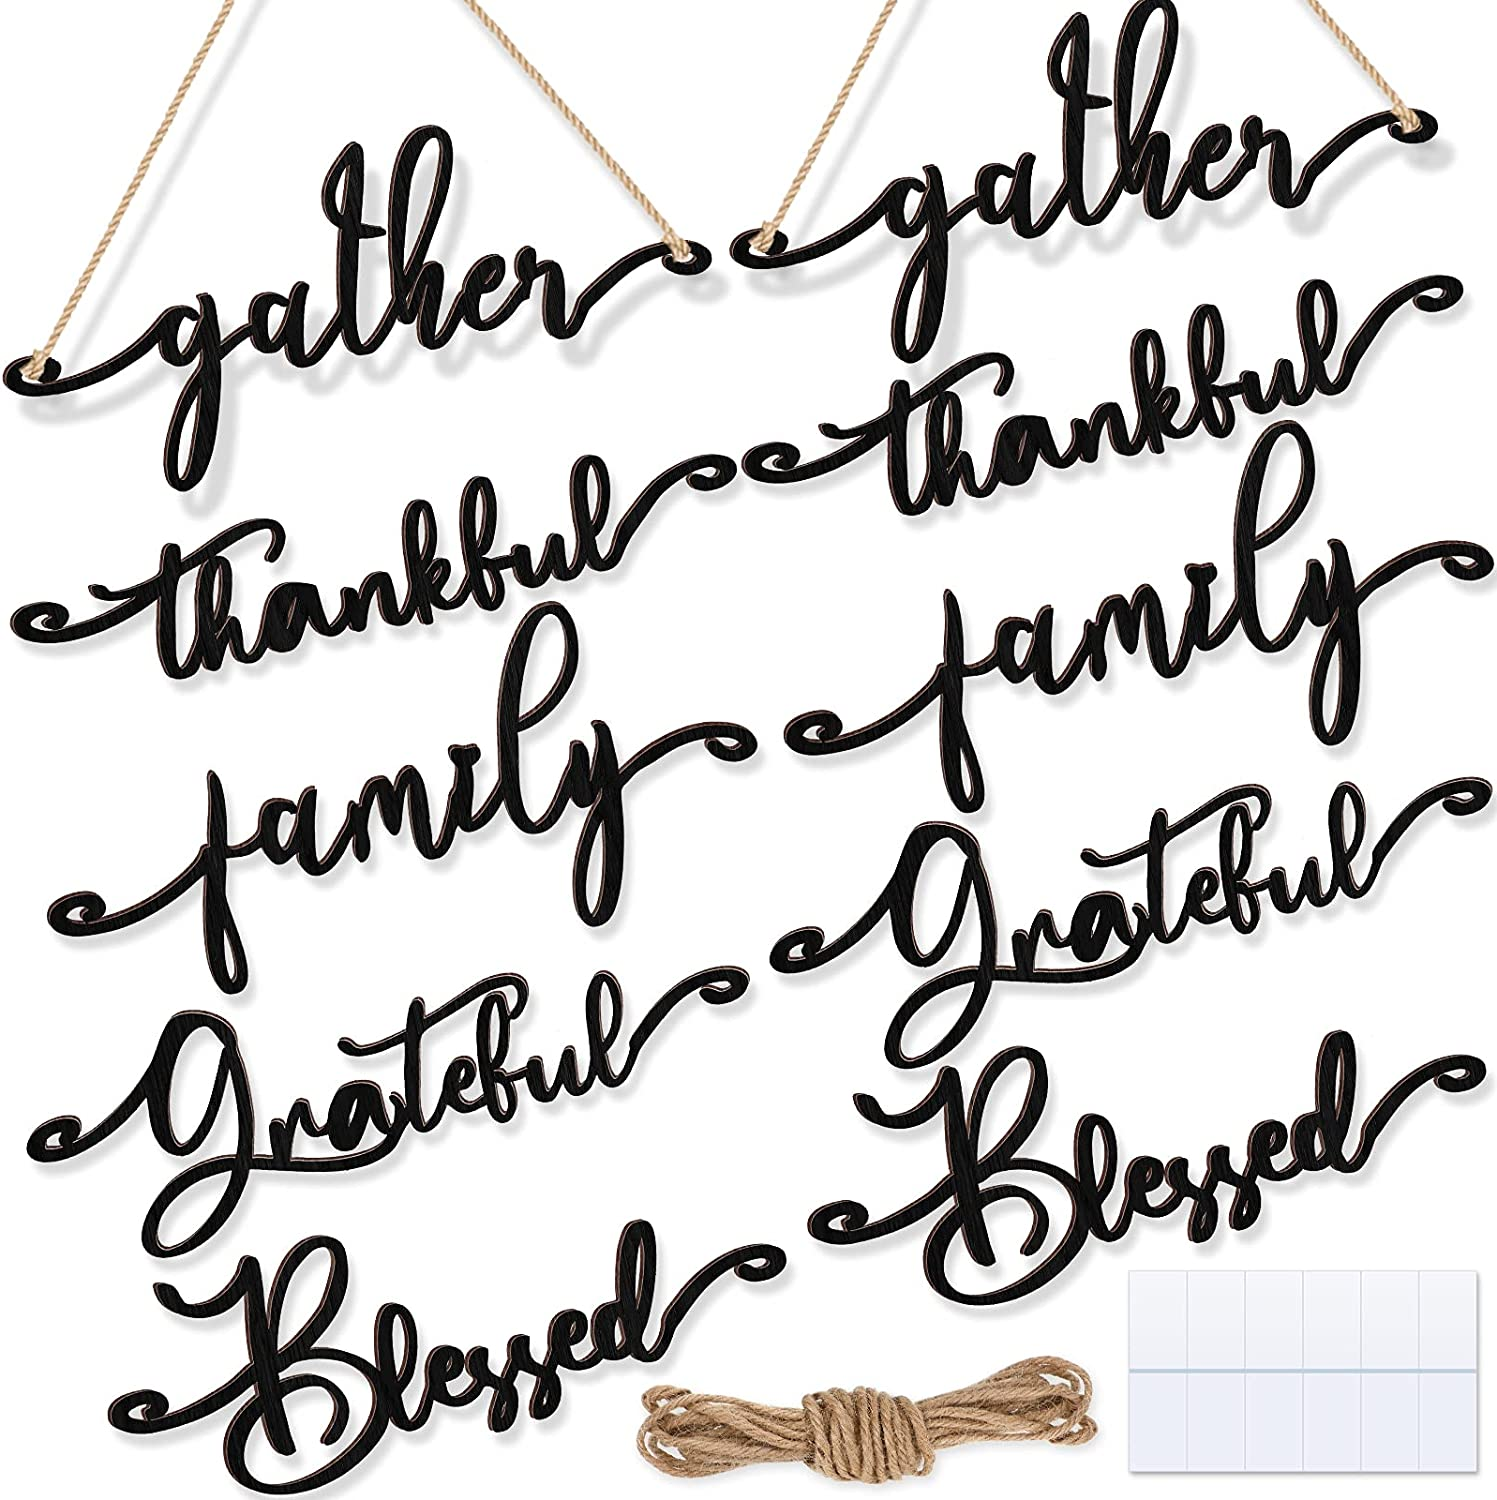 Set of 10 Wooden Cutout Letter Plate Ornaments Rustic Thankful Grateful Blessed Wood Sign Wall Decors Family Gather Cutout Art Table Decors for Home Thanksgiving Day Fall Reunion Dinner, Black